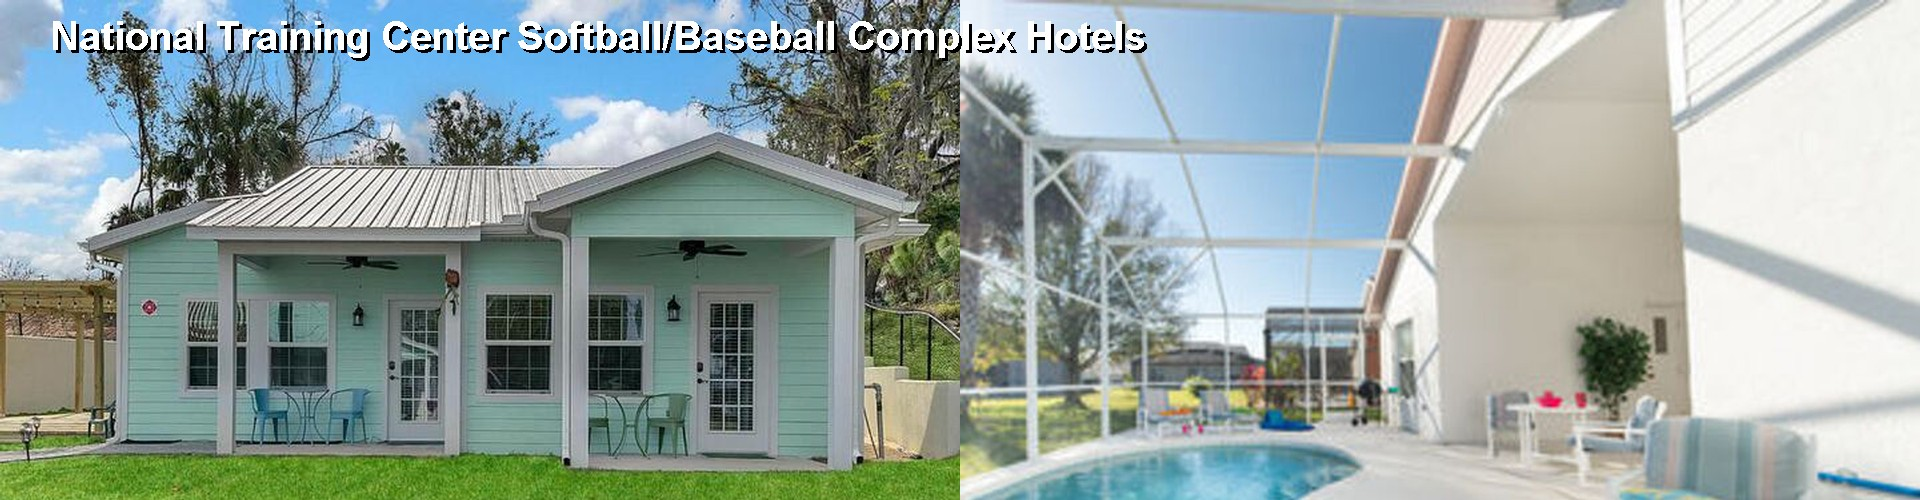 5 Best Hotels Near National Training Center Softball/Baseball Complex